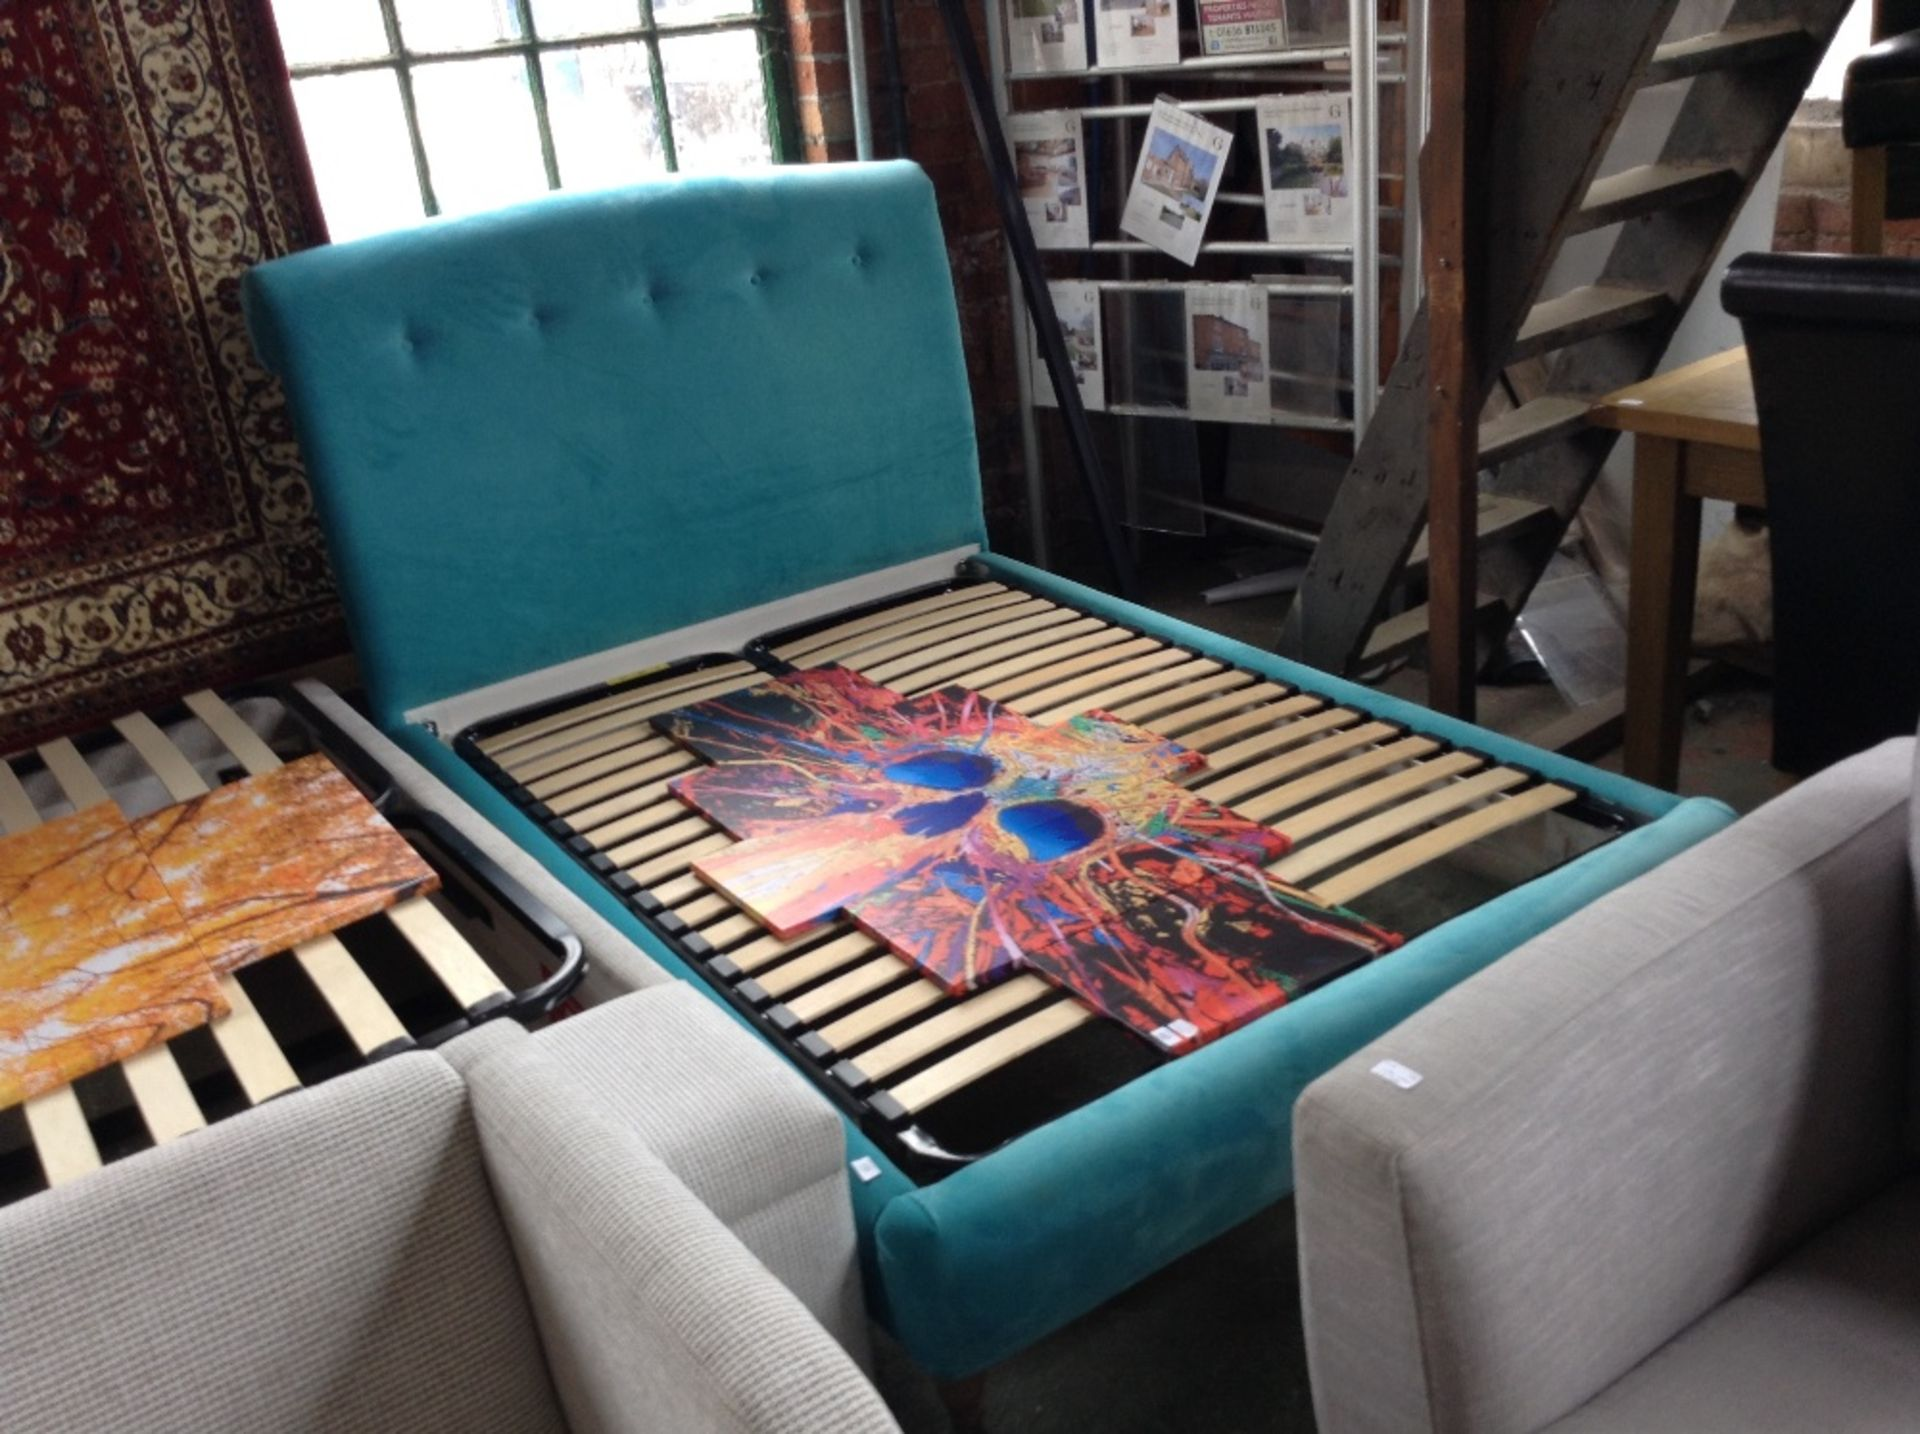 Lot 156 - TEAL UPHOLSTERED DOUBLE BED FRAME